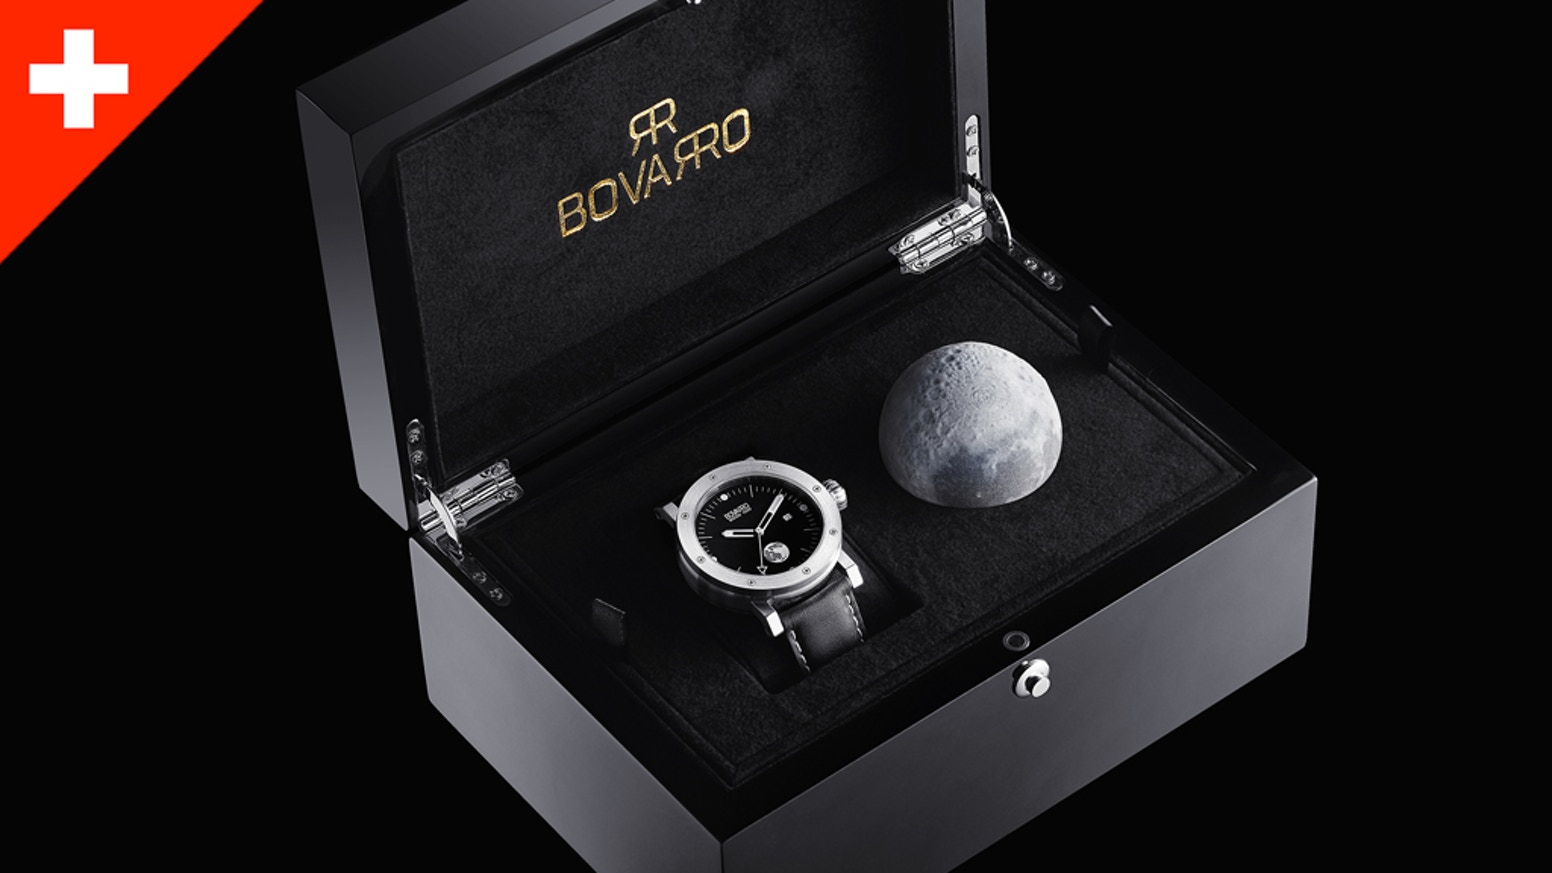 Assembled in Switzerland, an Automatic Watch inspired by 1969 Apollo 11 Lunar Landing. 42 & 46 mm cases in Stainless Steel or 18K Gold